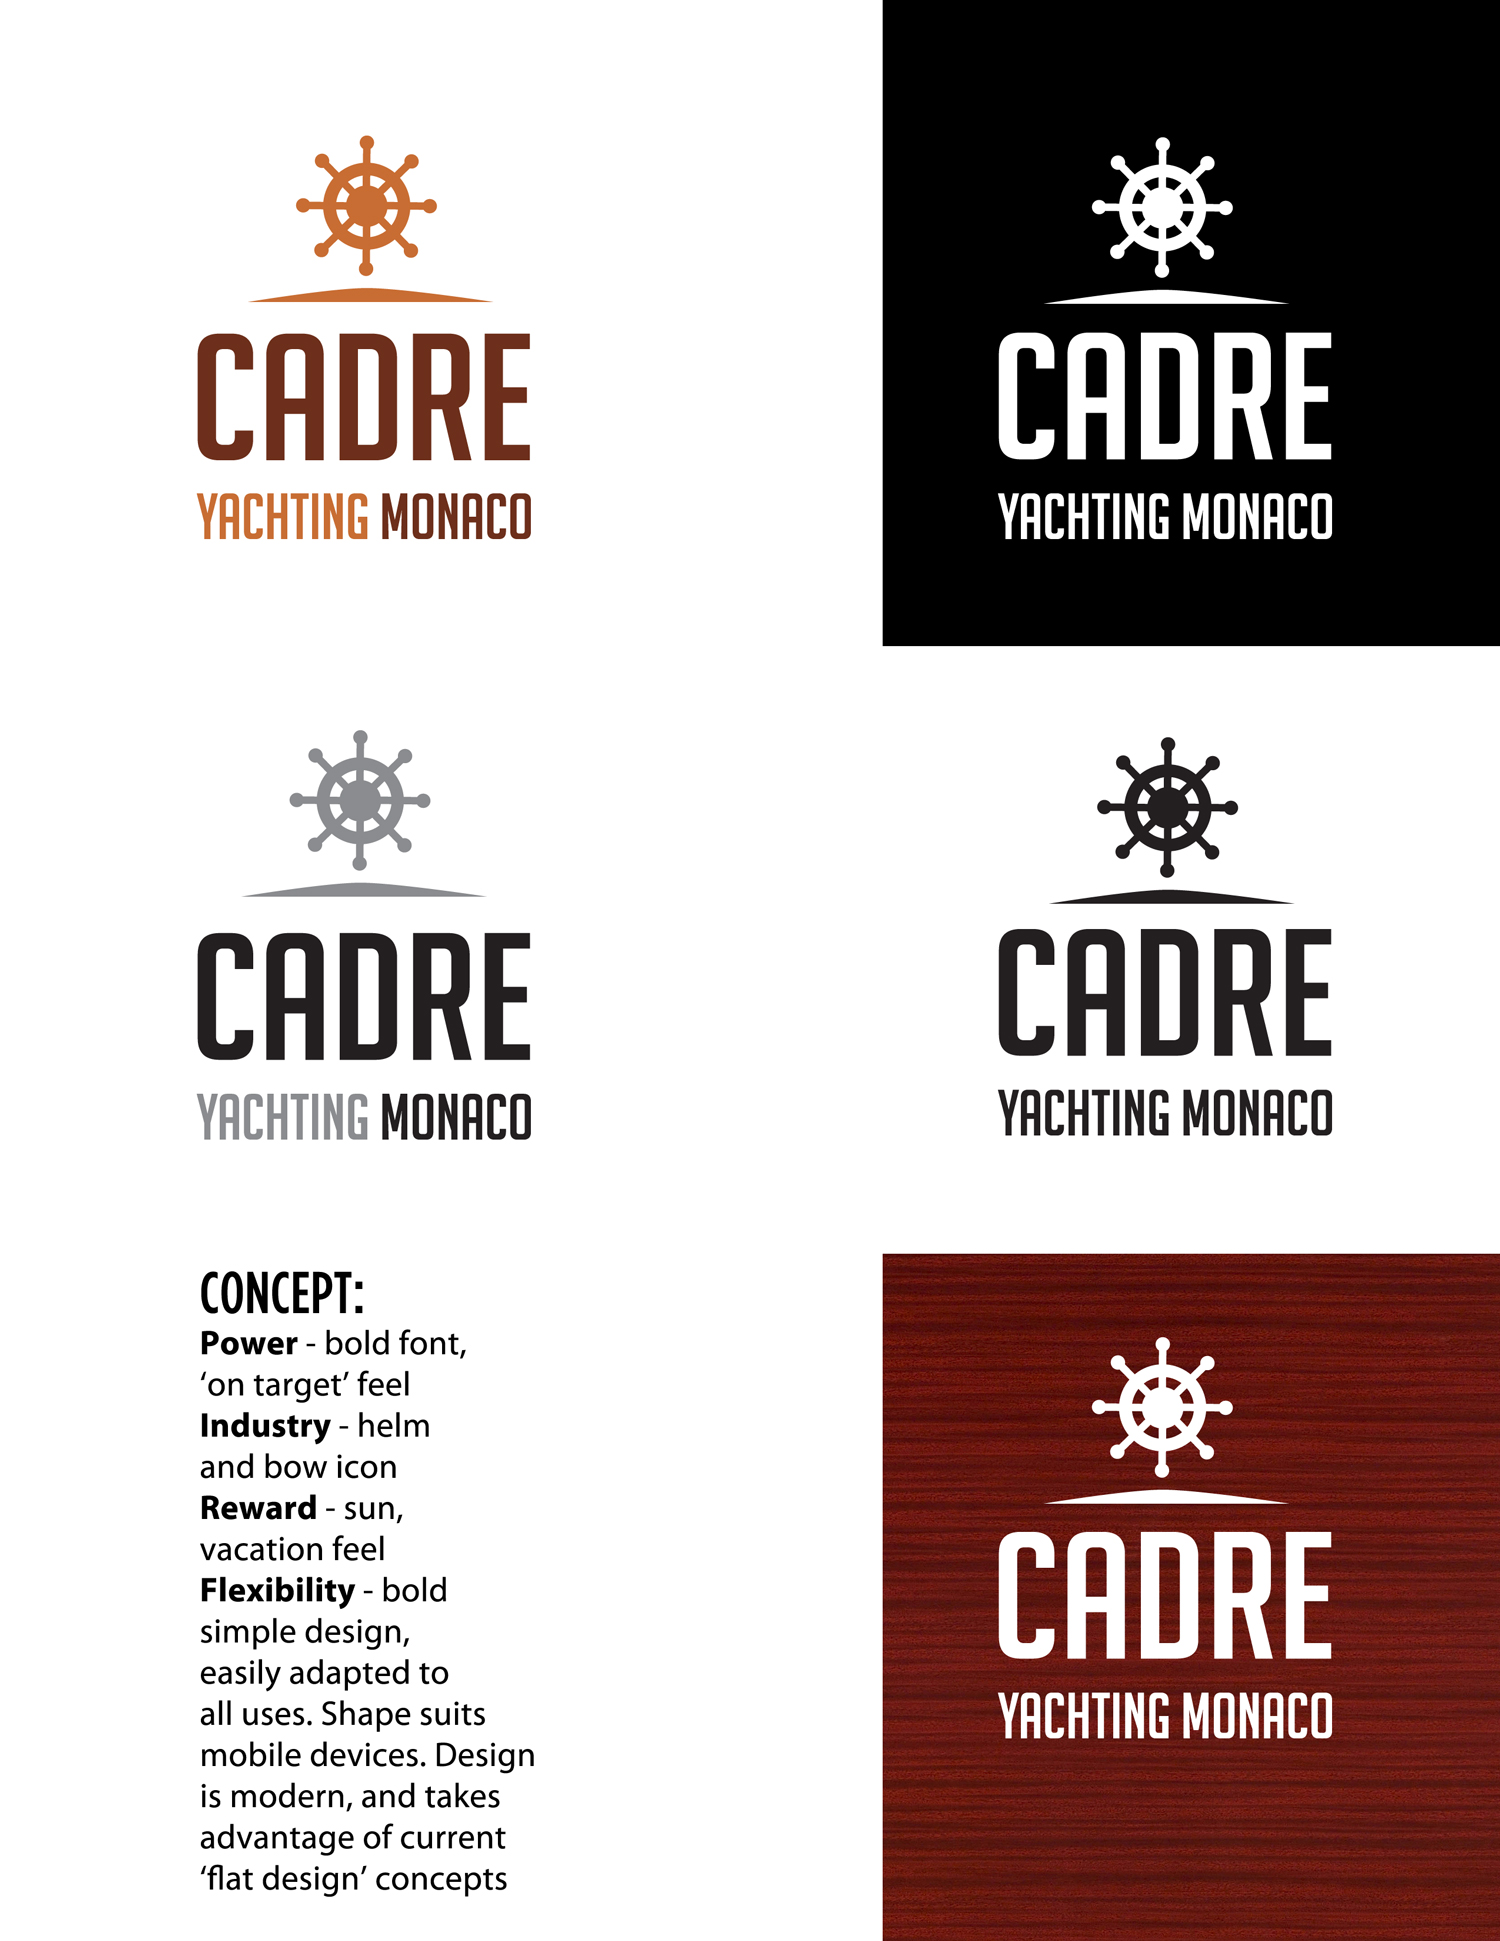 Logo Design by Jude Goodwin - Entry No. 356 in the Logo Design Contest New Logo Design for Cadre Yachting Monaco.